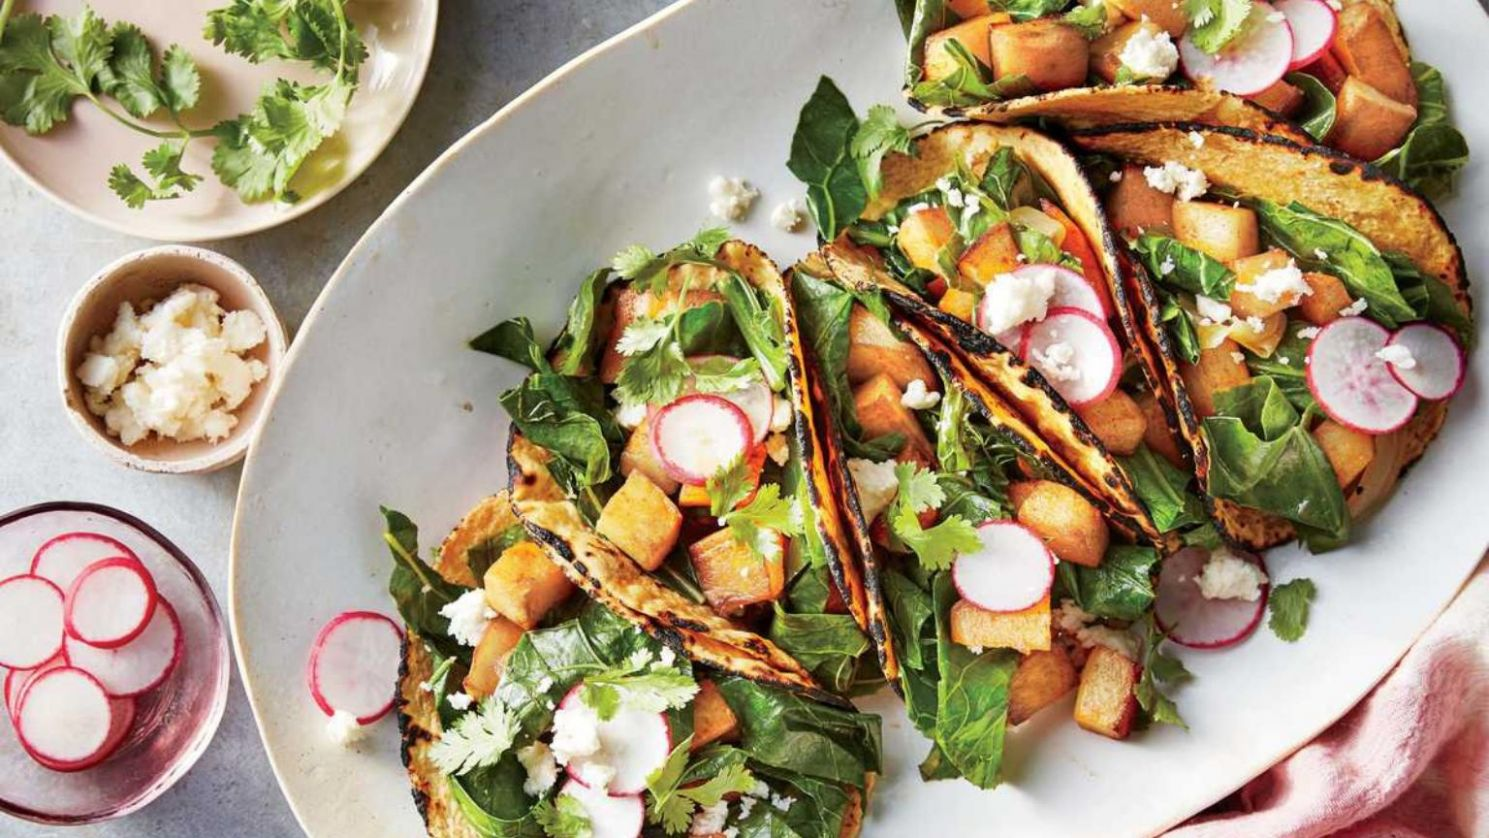 9 Easy Vegetarian Recipes for Busy Weeknights